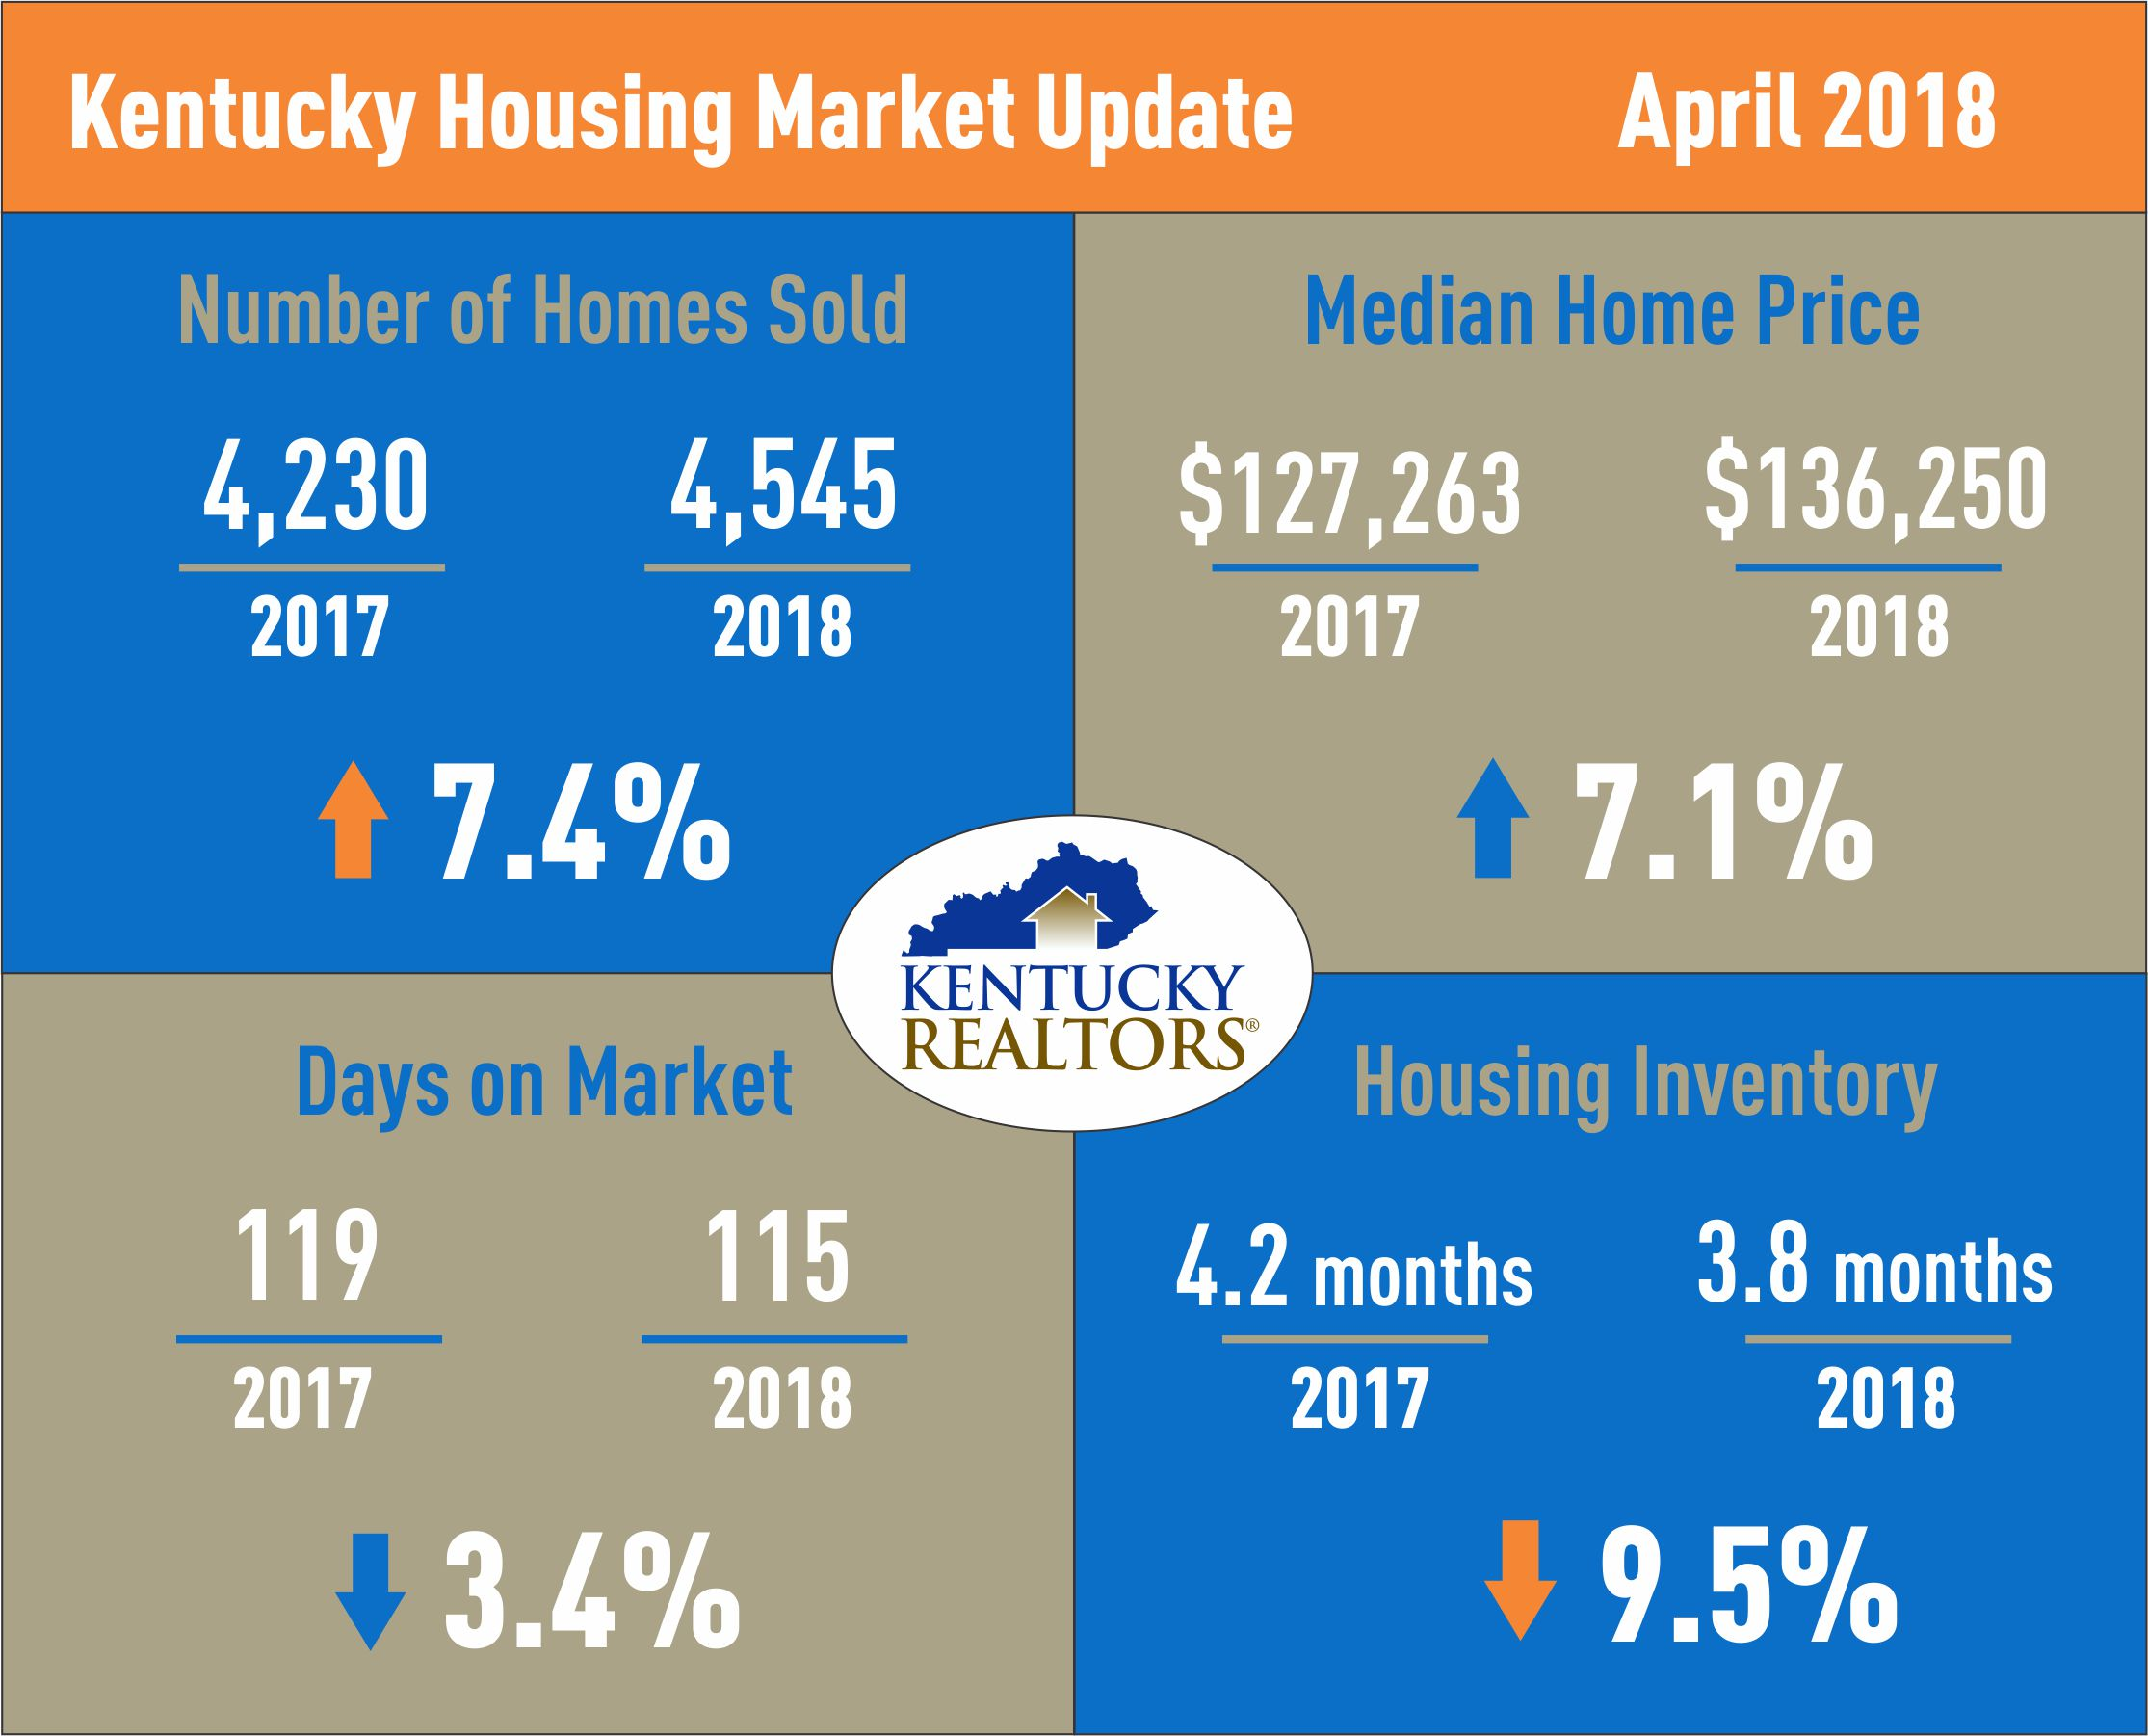 Kentucky Housing Market Update April 2018